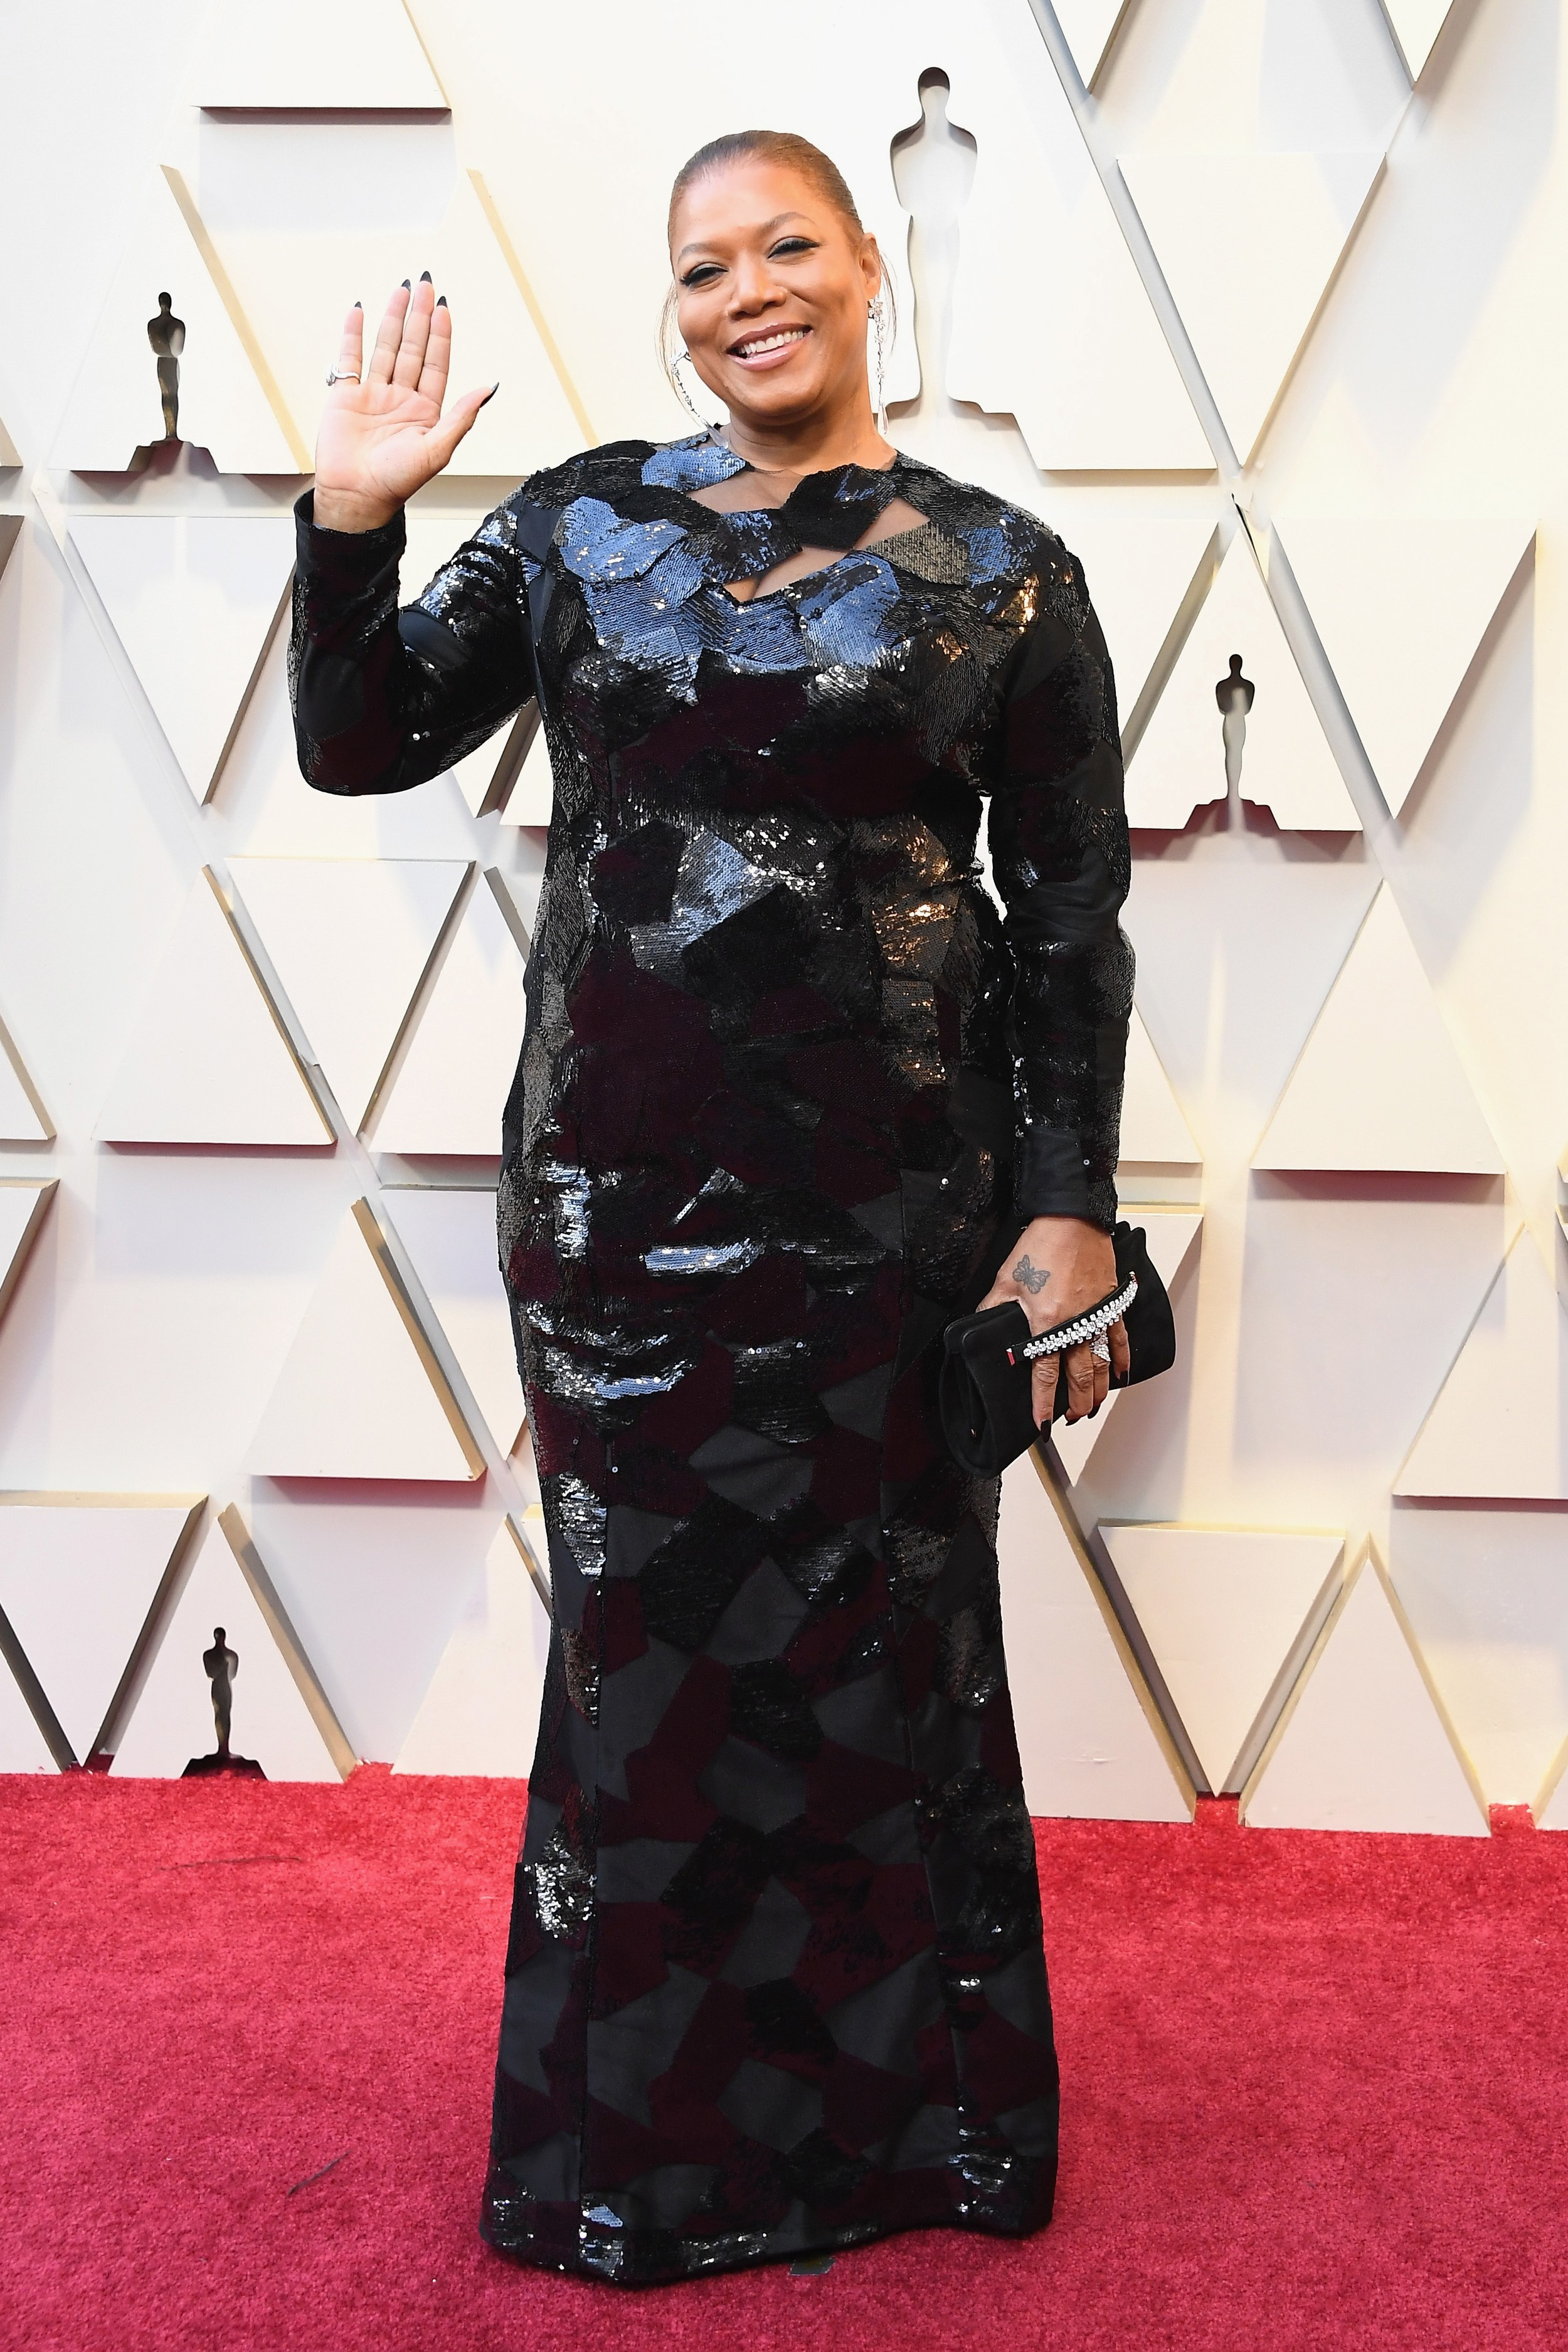 QUEEN LATIFAH - In Michael Costello Gown & Chopard jewelry